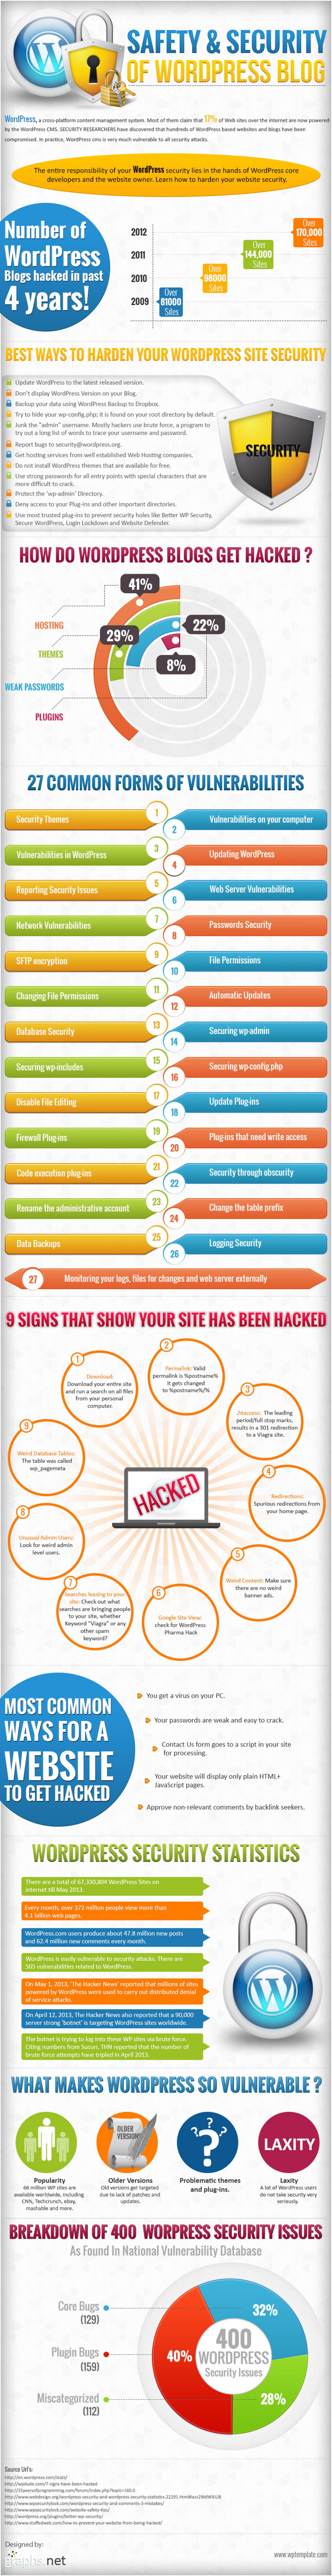 Safety and Security of WordPress Blog (Infographic) Infographic